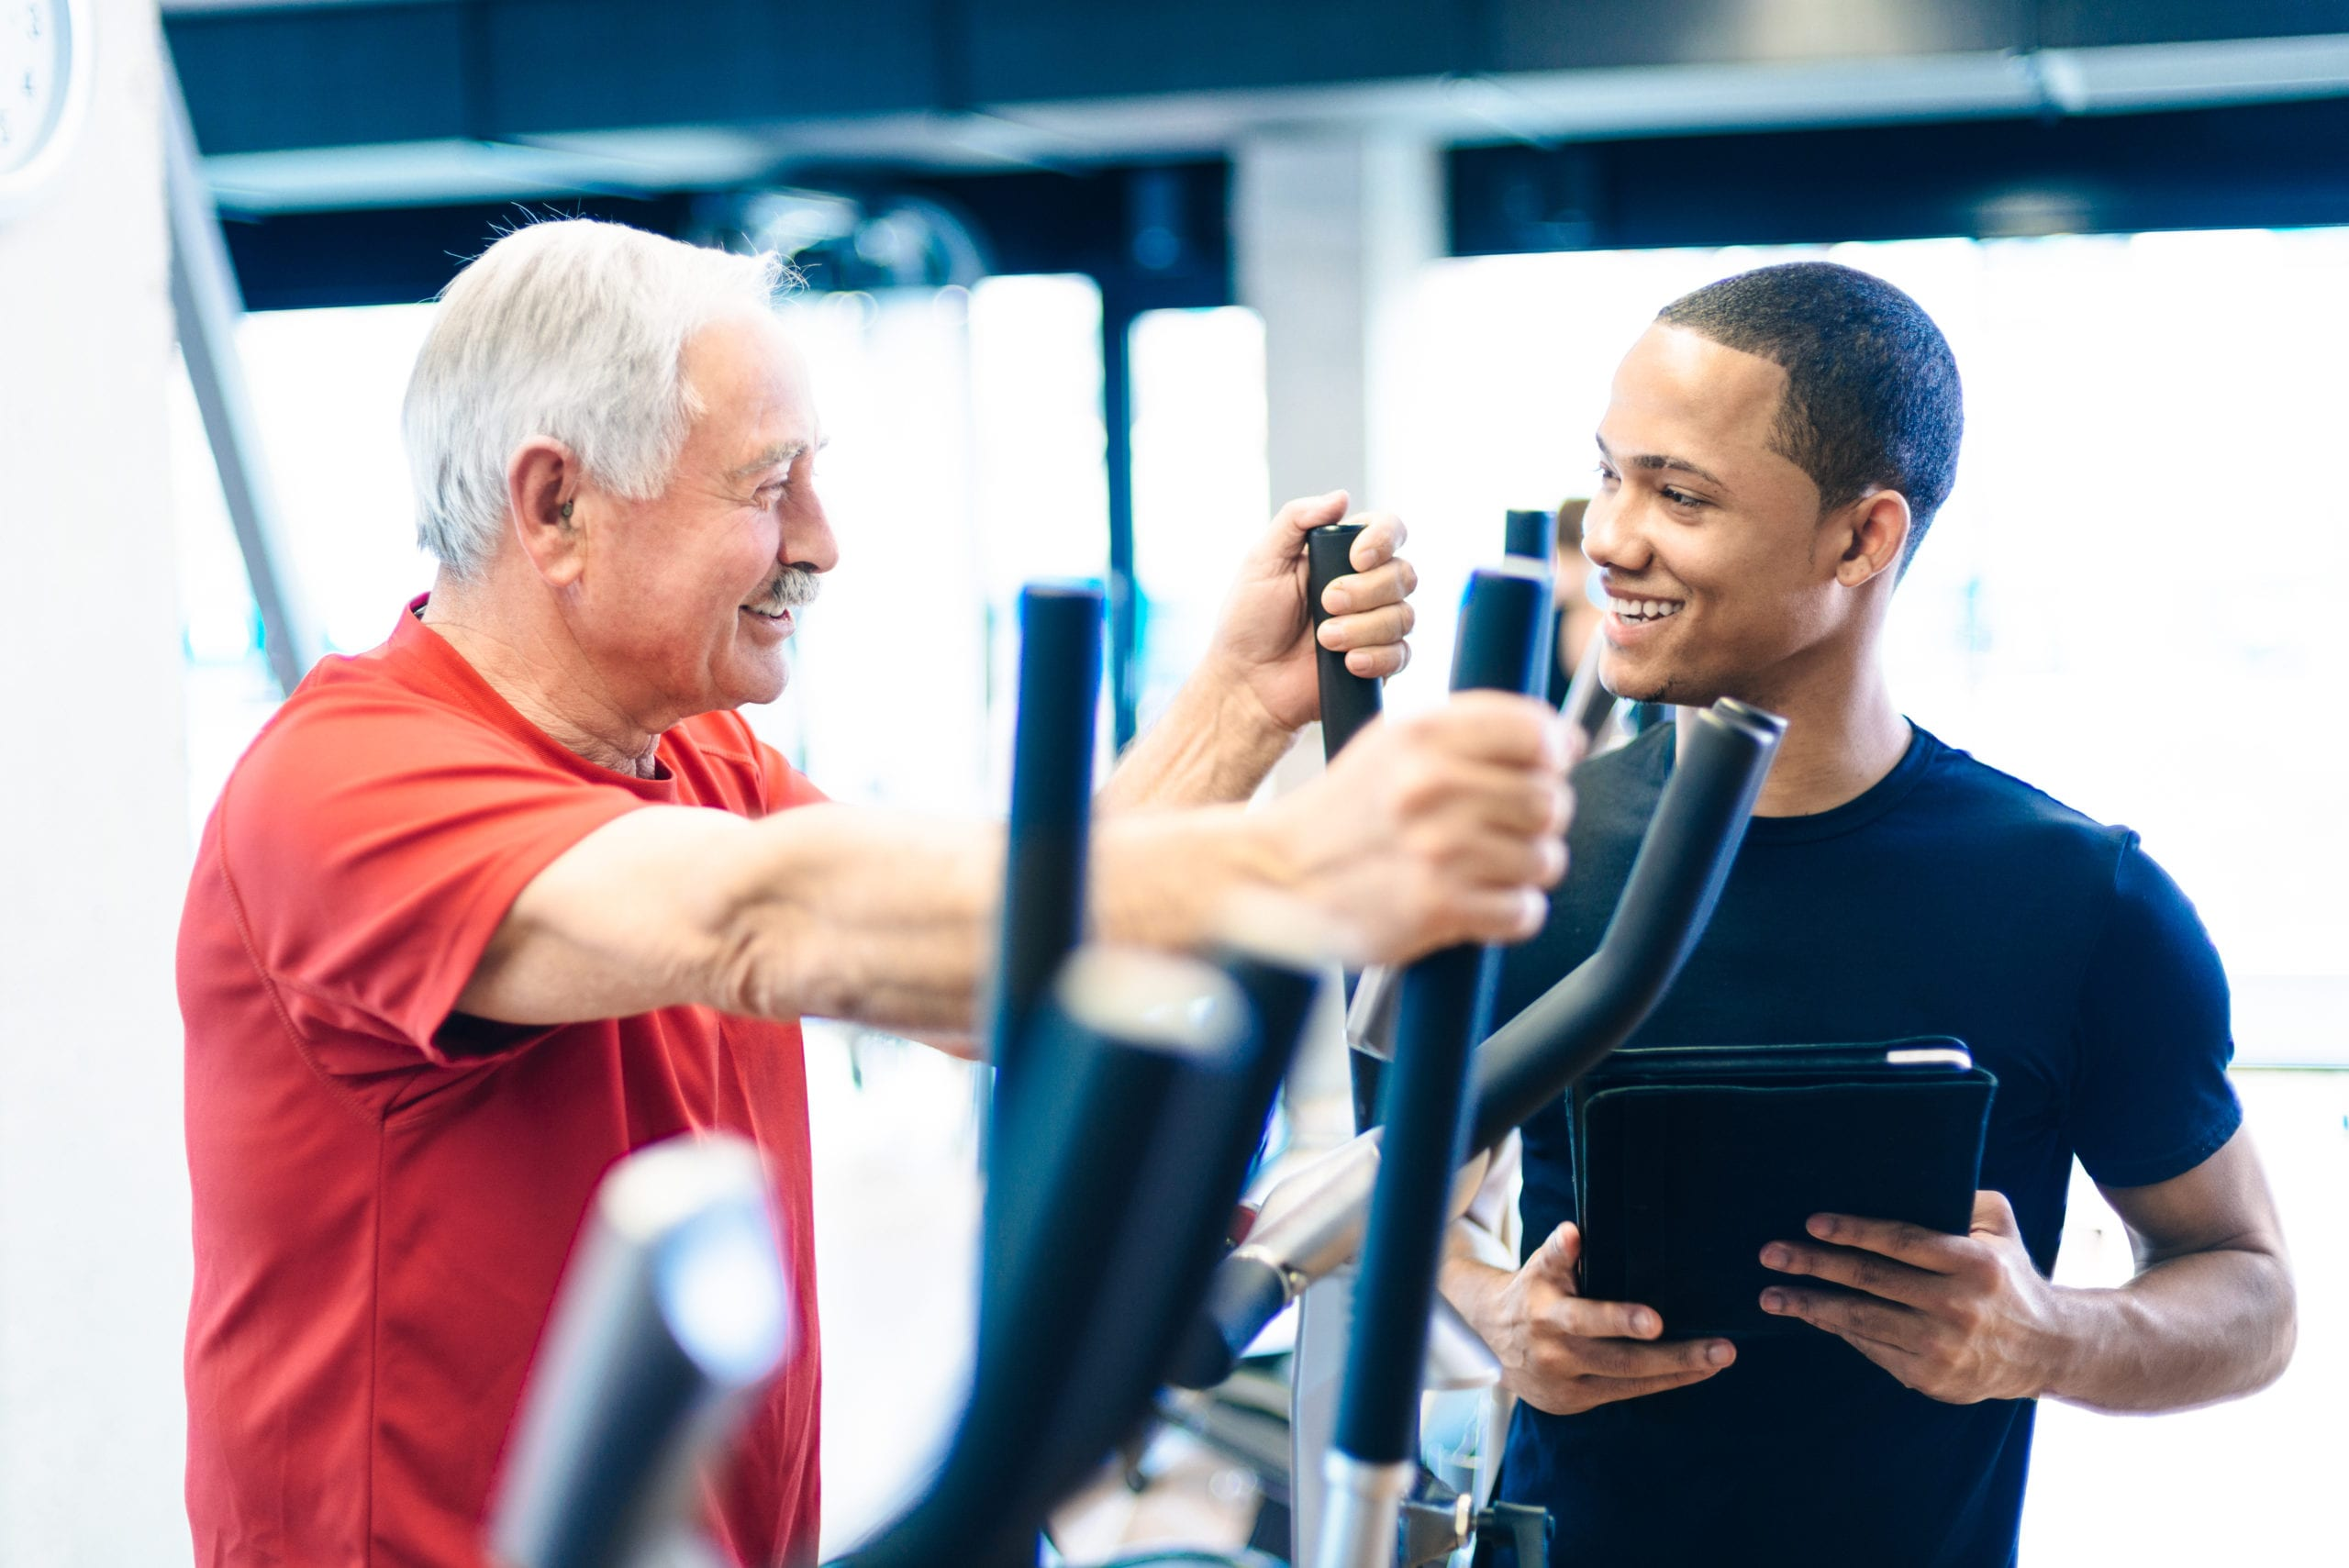 One on One RWJ RAHWAY FITNESS & WELLNESS AT CARTERETO